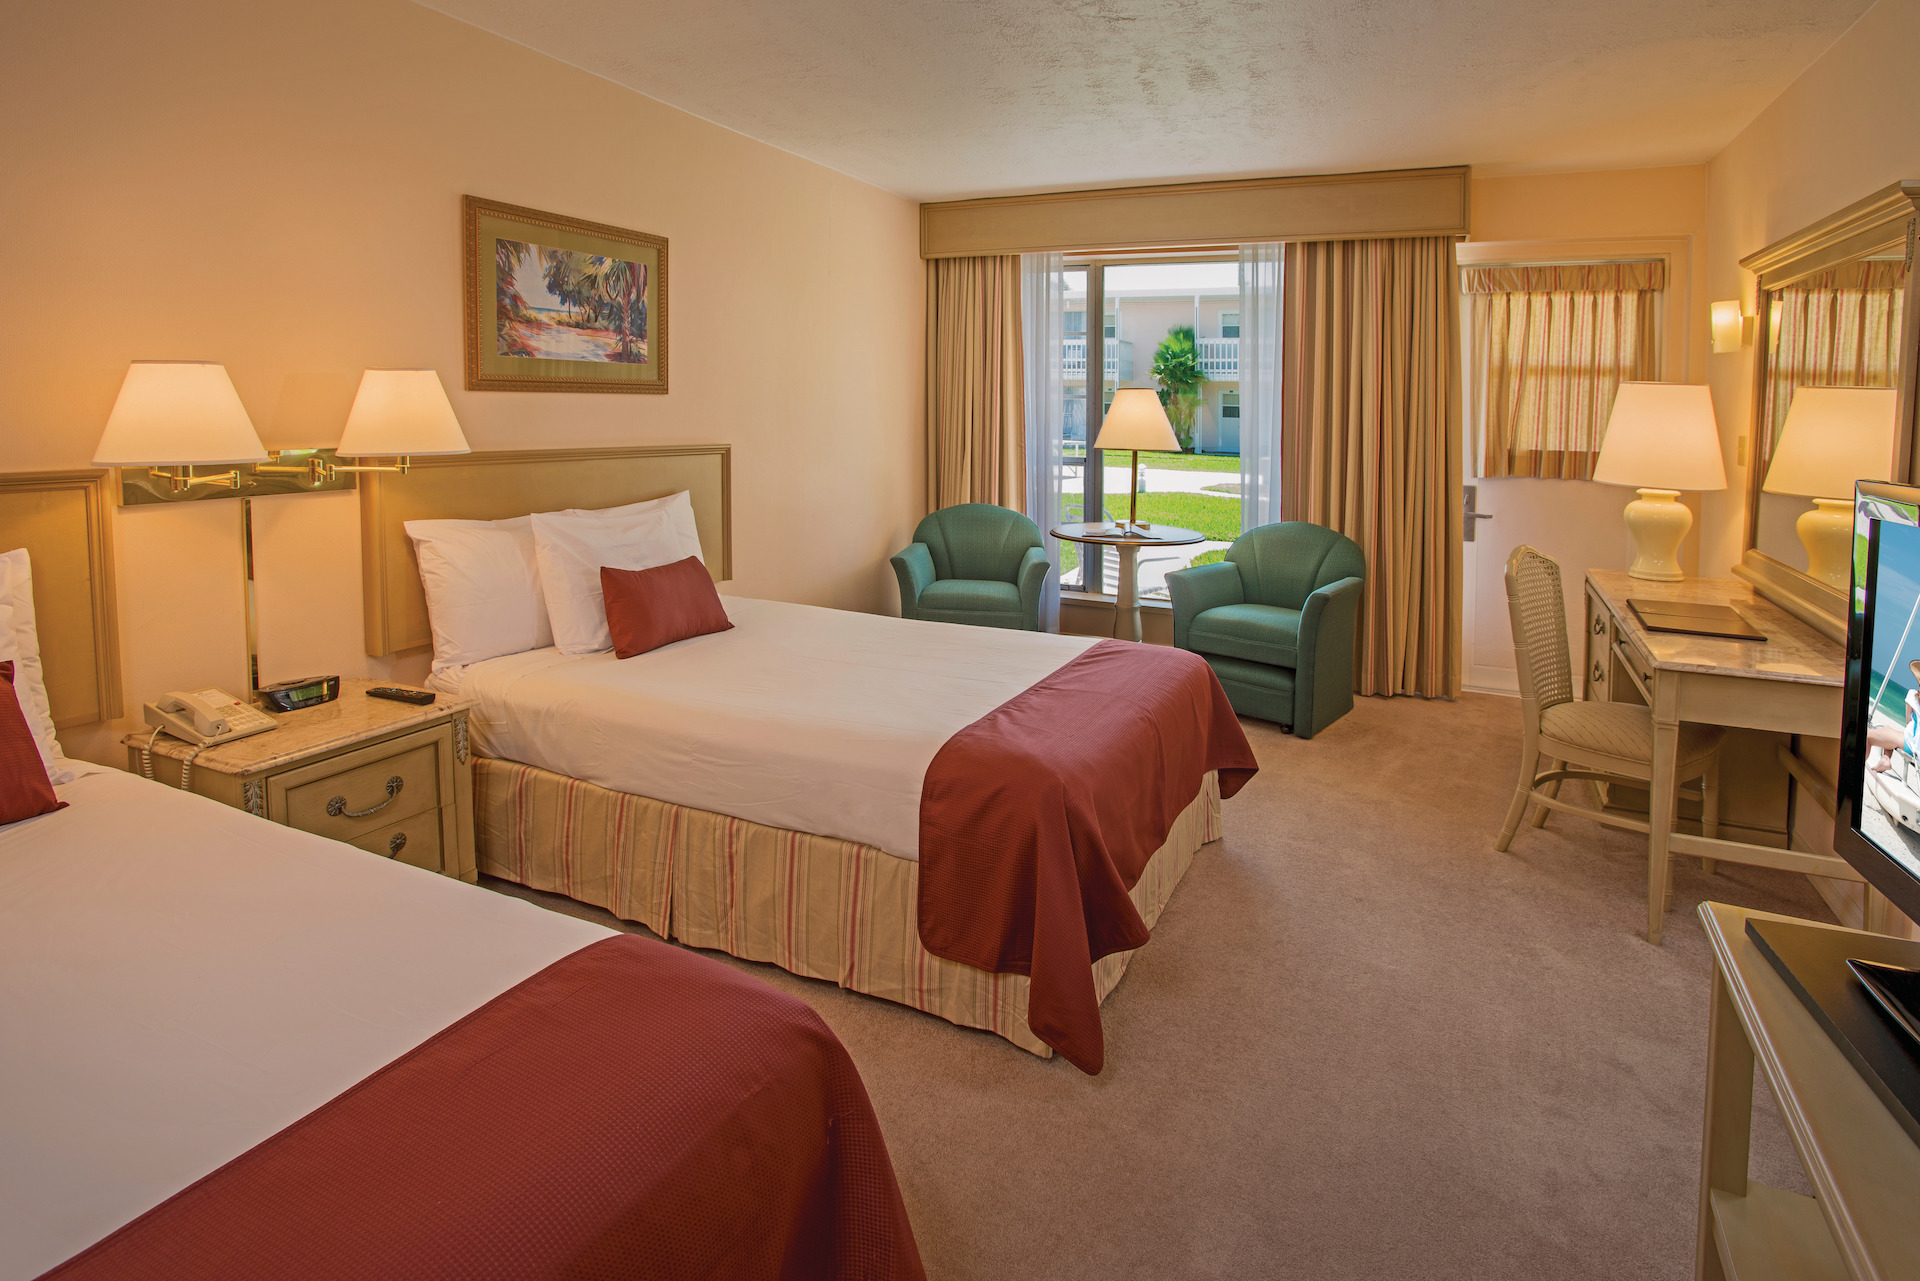 Garden view two bedroom guest room at Sandcastle Resort at Lido beach.jpg